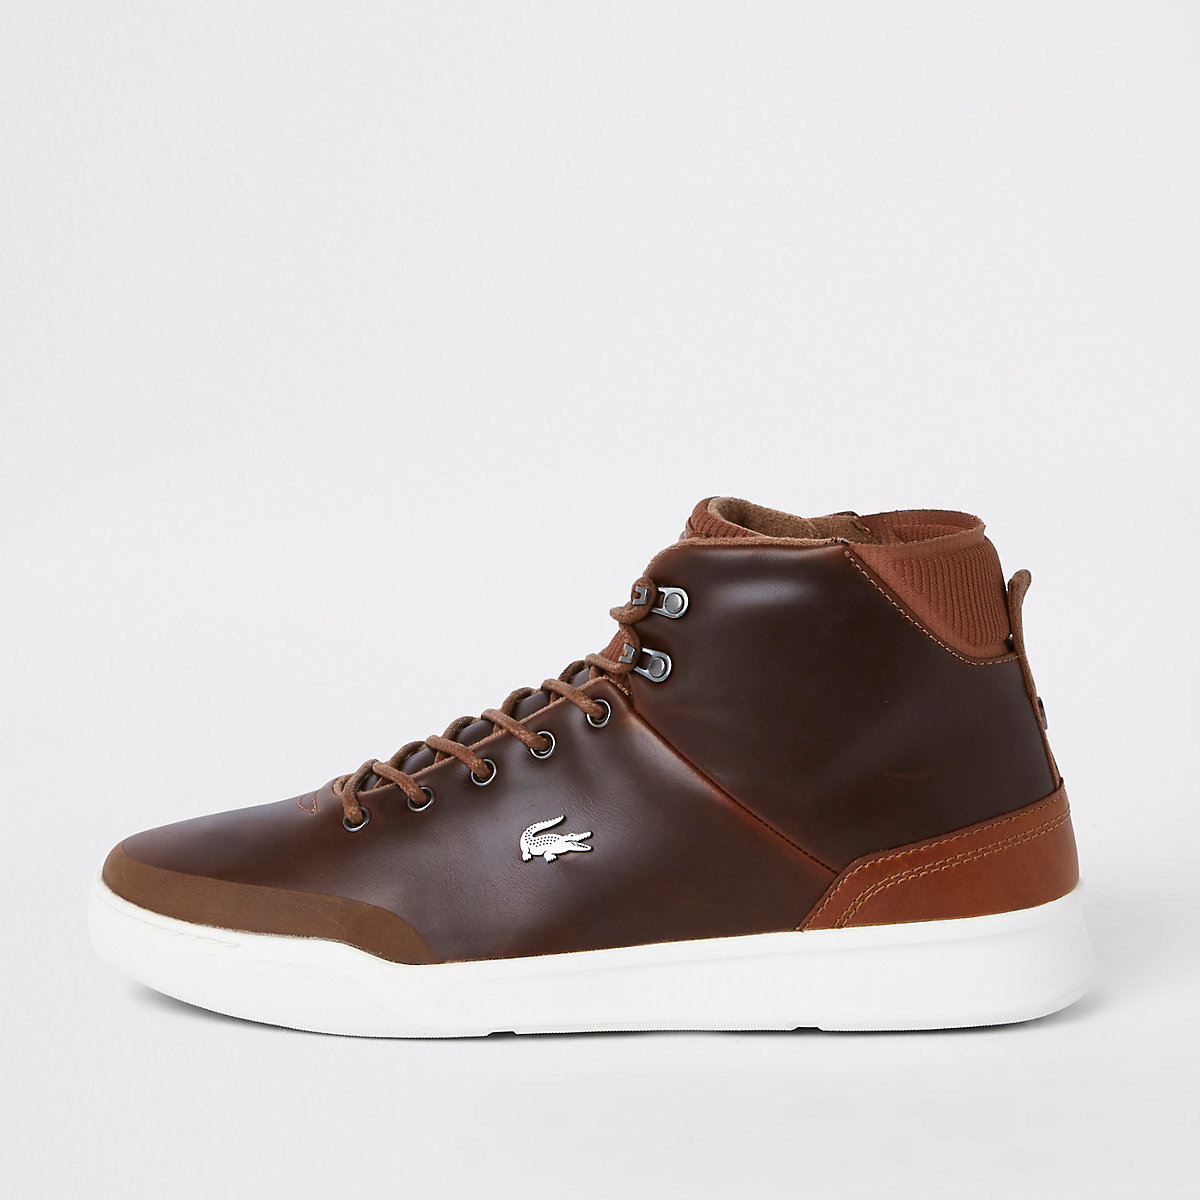 Lacoste brown leather hi top trainers